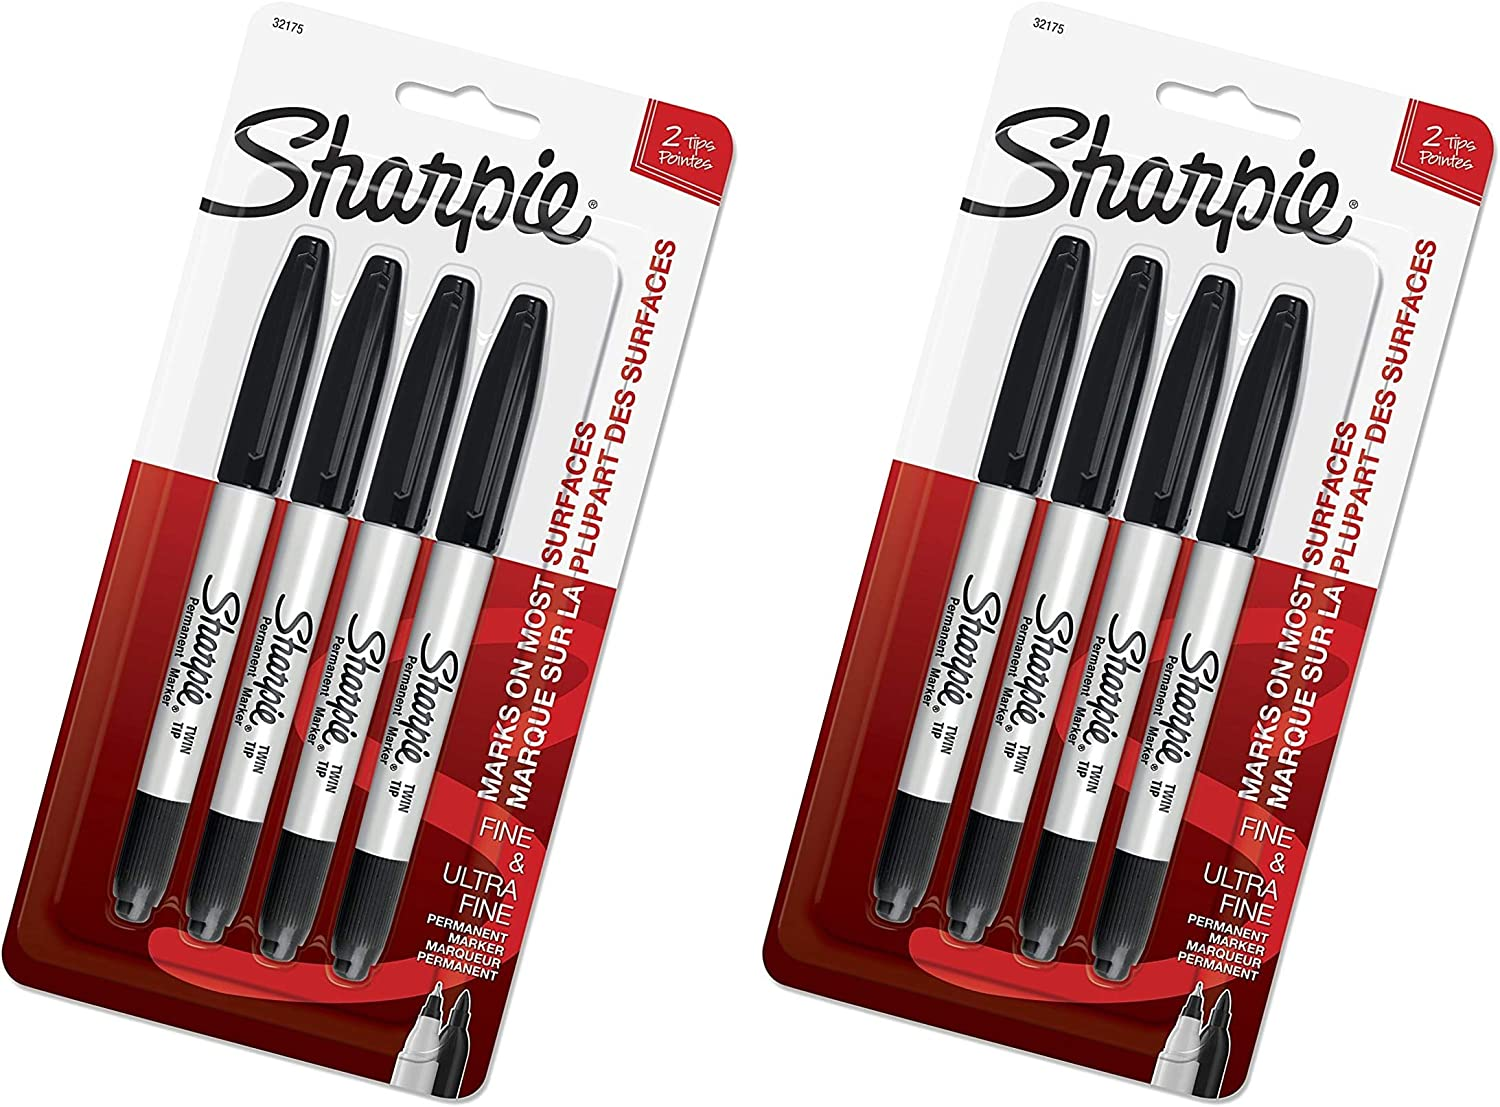 Twin Tip Permanent Markers, Fine & Ultra-Fine Points, Black, 4 Pack (32175PP) - 2 Pack